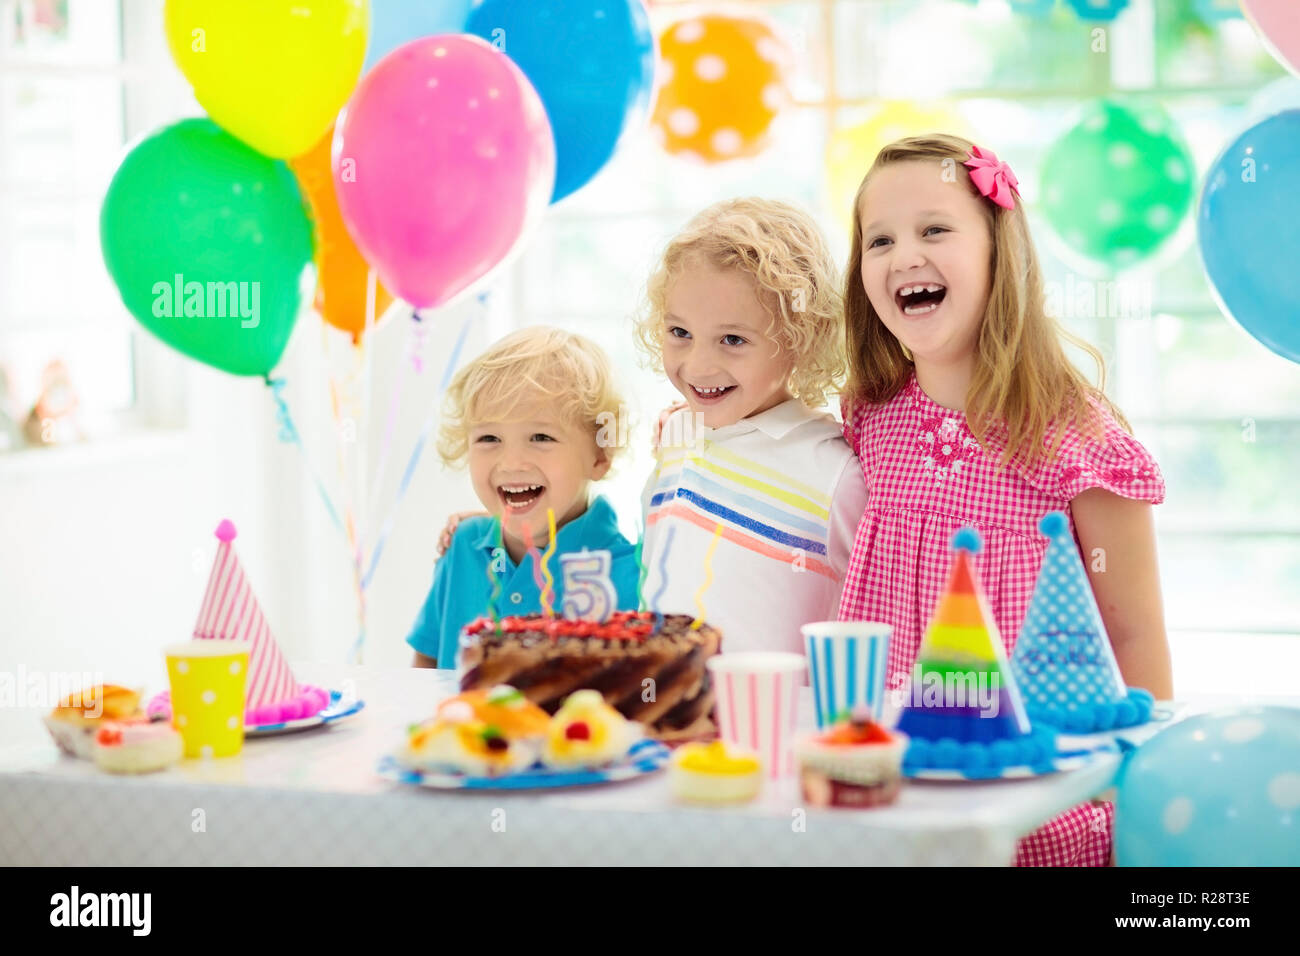 Kids Birthday Party Child Blowing Out Candles On Colorful Cake Decorated Home With Rainbow Flag Banners Balloons Farm Animals Theme Celebration L